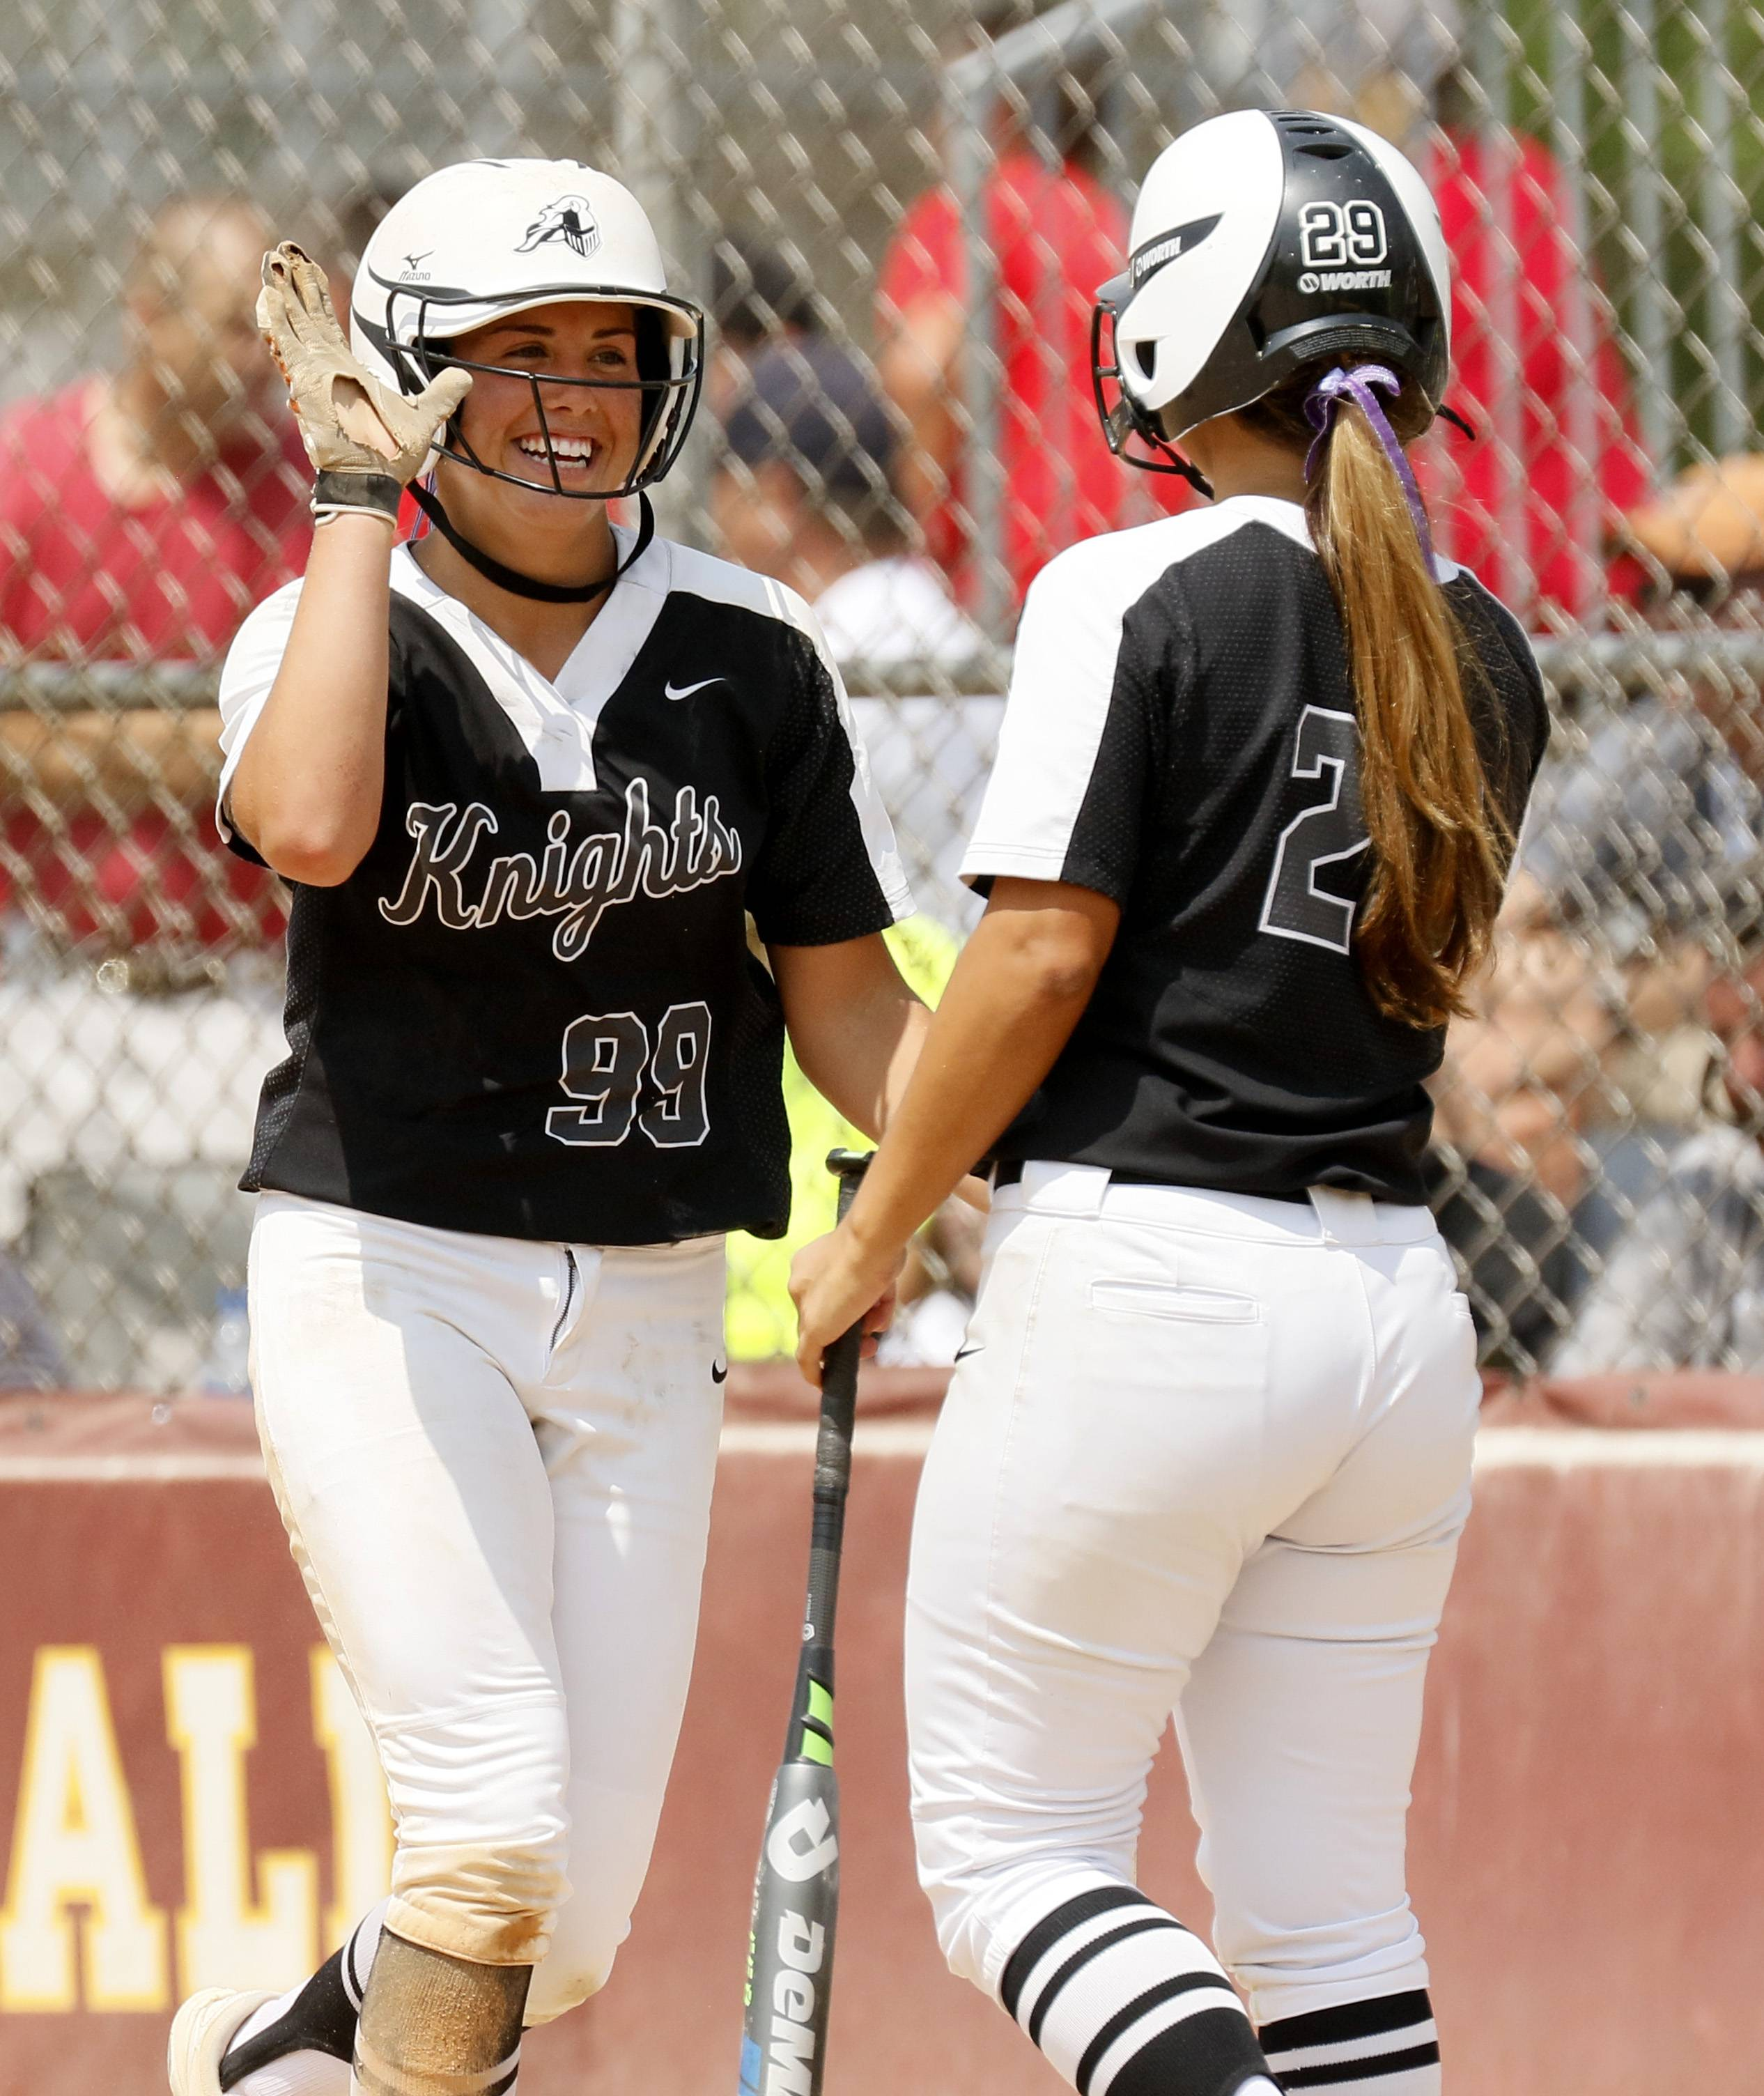 Kaneland's Rose Roach (99) gets a high-five after scoring a run against Montini Catholic during the IHSA Class 3A state softball championship.